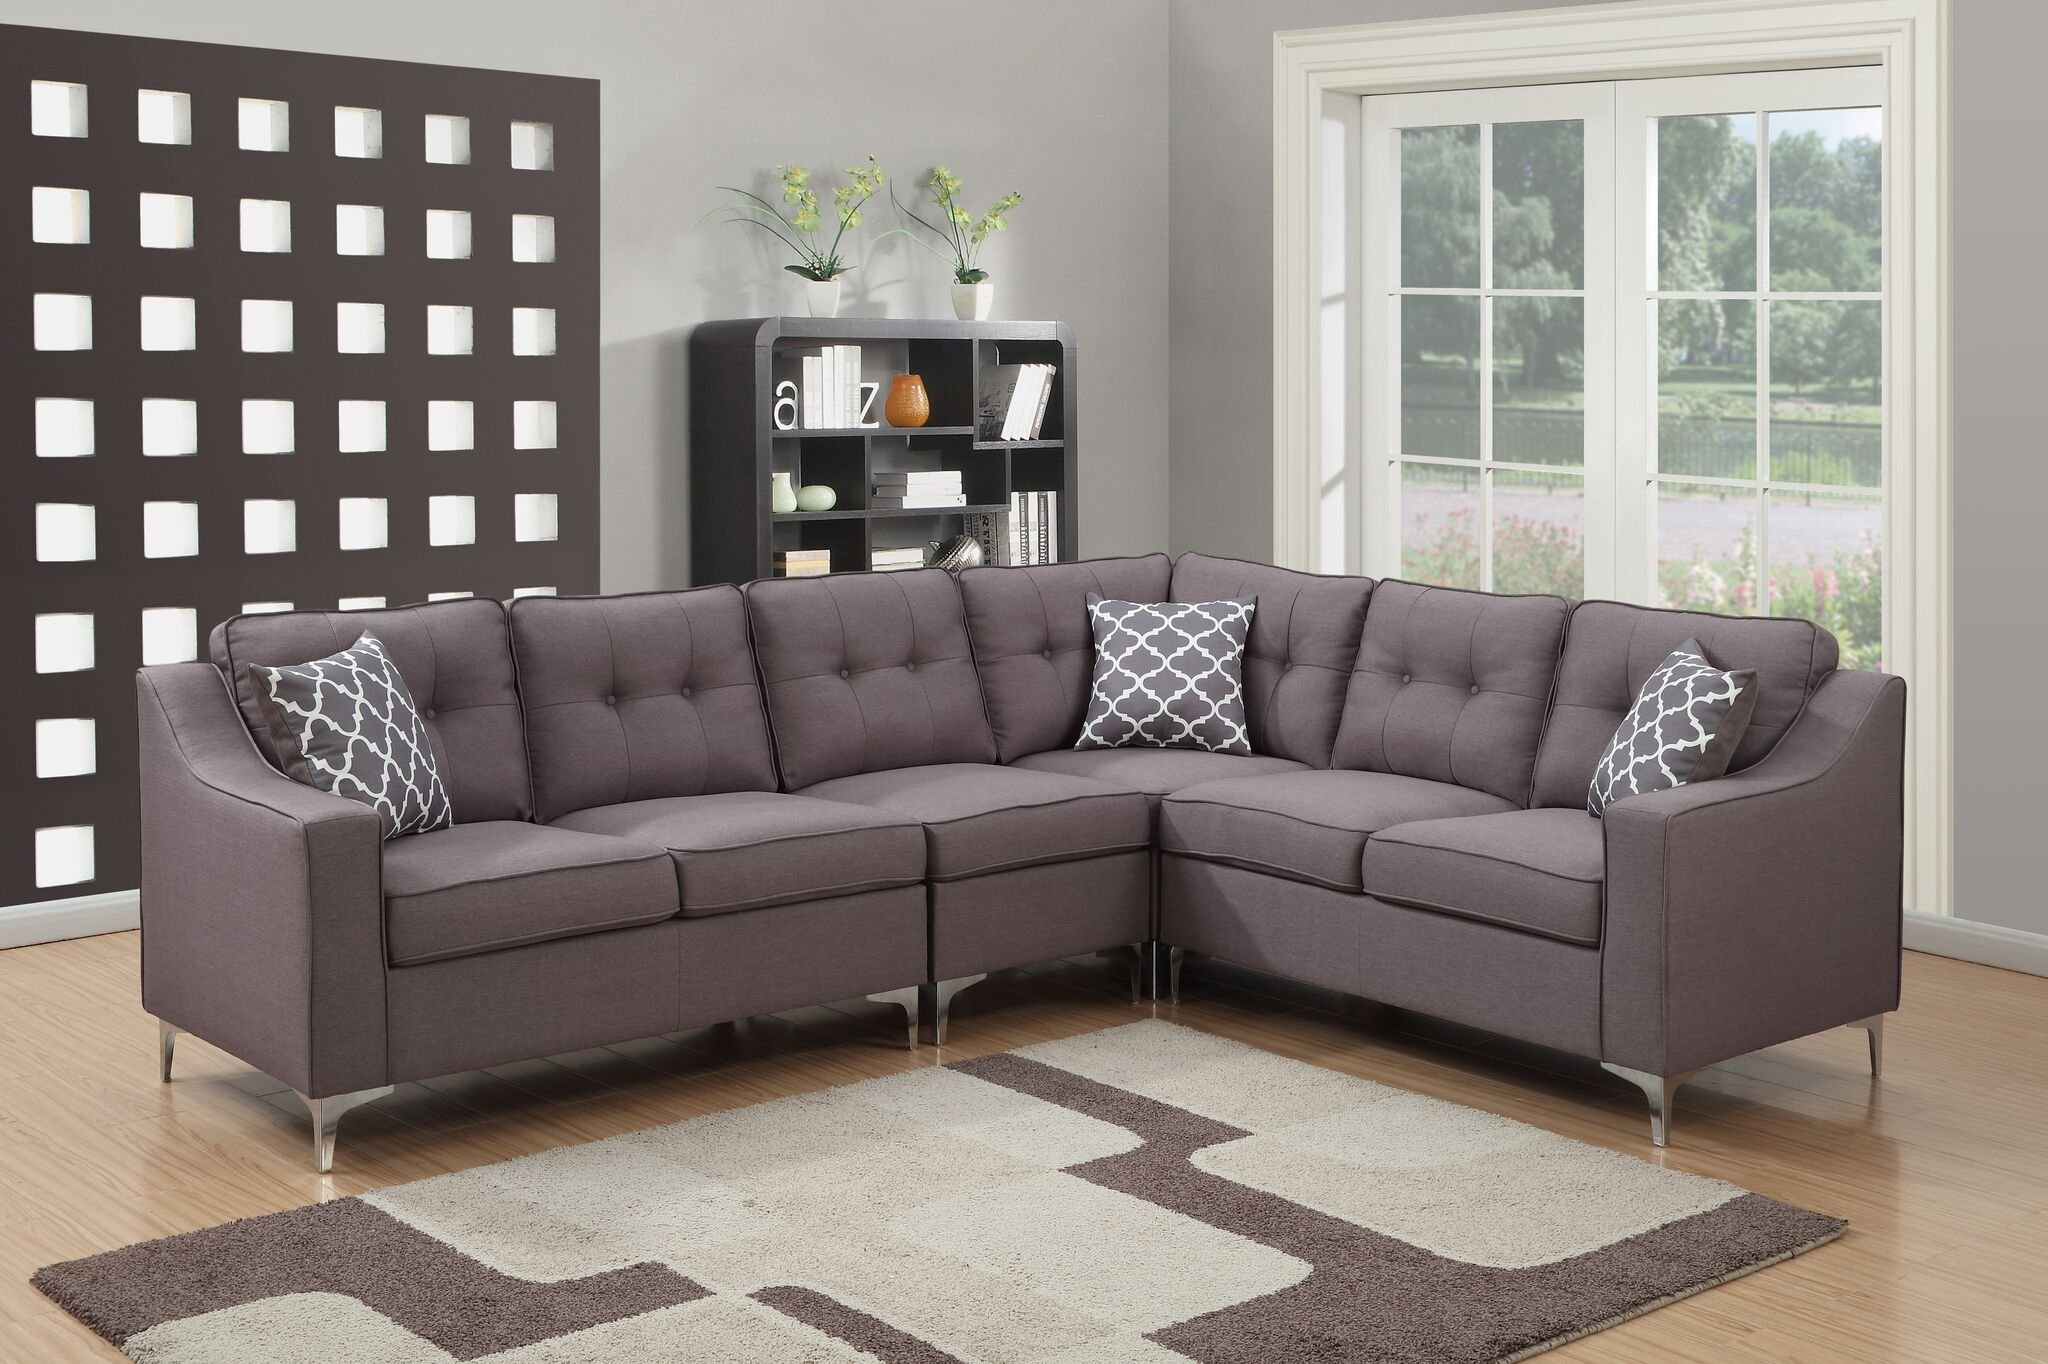 AC Pacific 4 Piece Kayla Collection Modern Linen Fabric Upholstered Tufted L-Shaped Living Room Sectional, Grey by AC Pacific